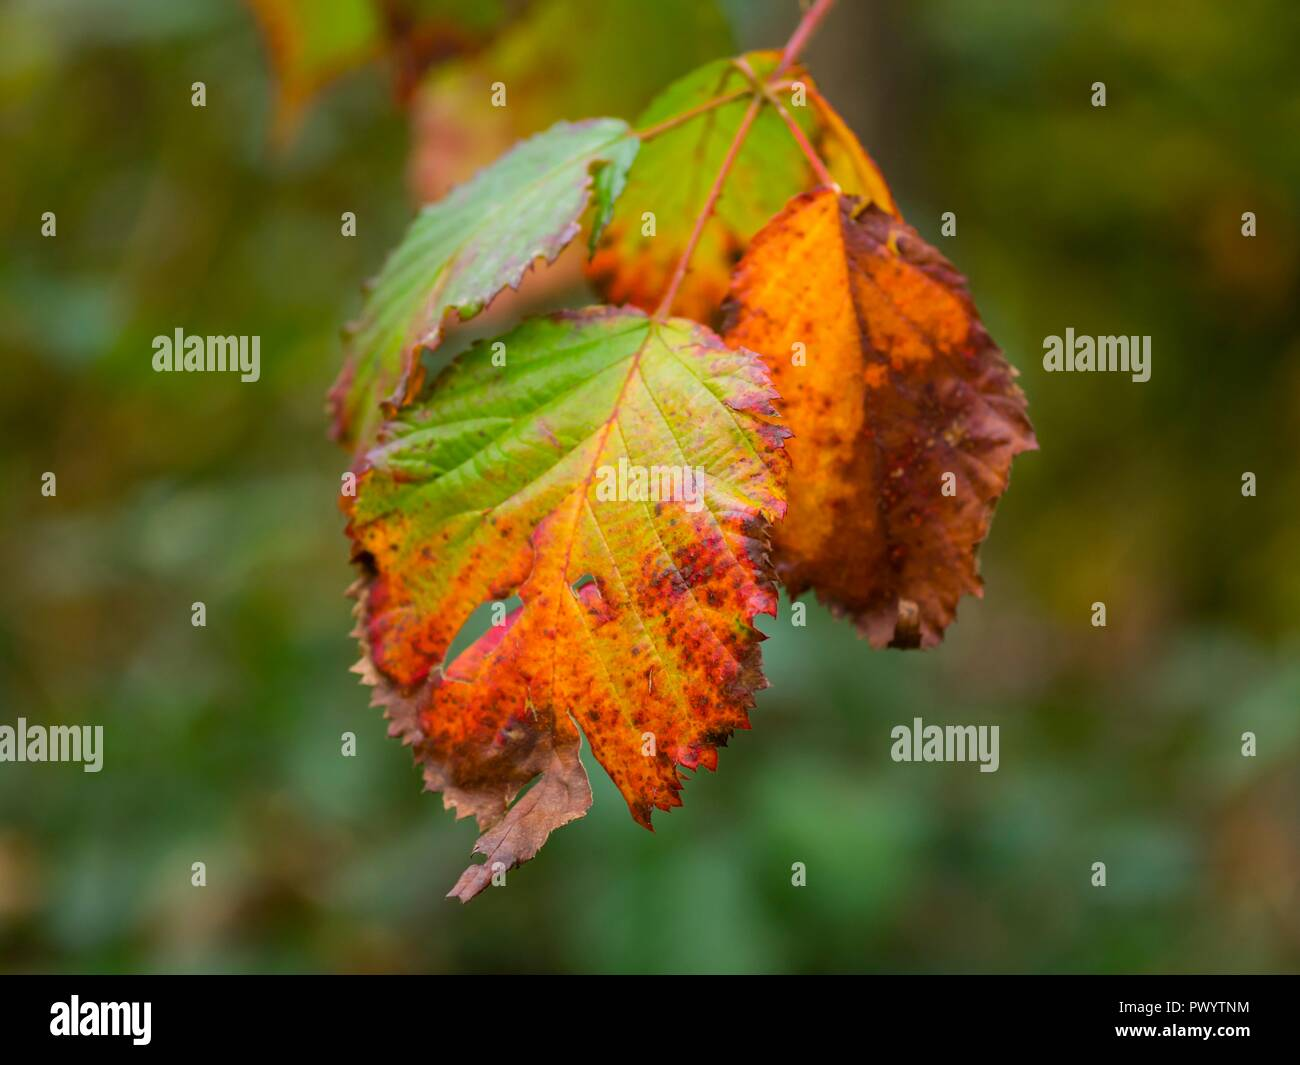 Almost rust-color covered hanging leaf in Autumn - Stock Image